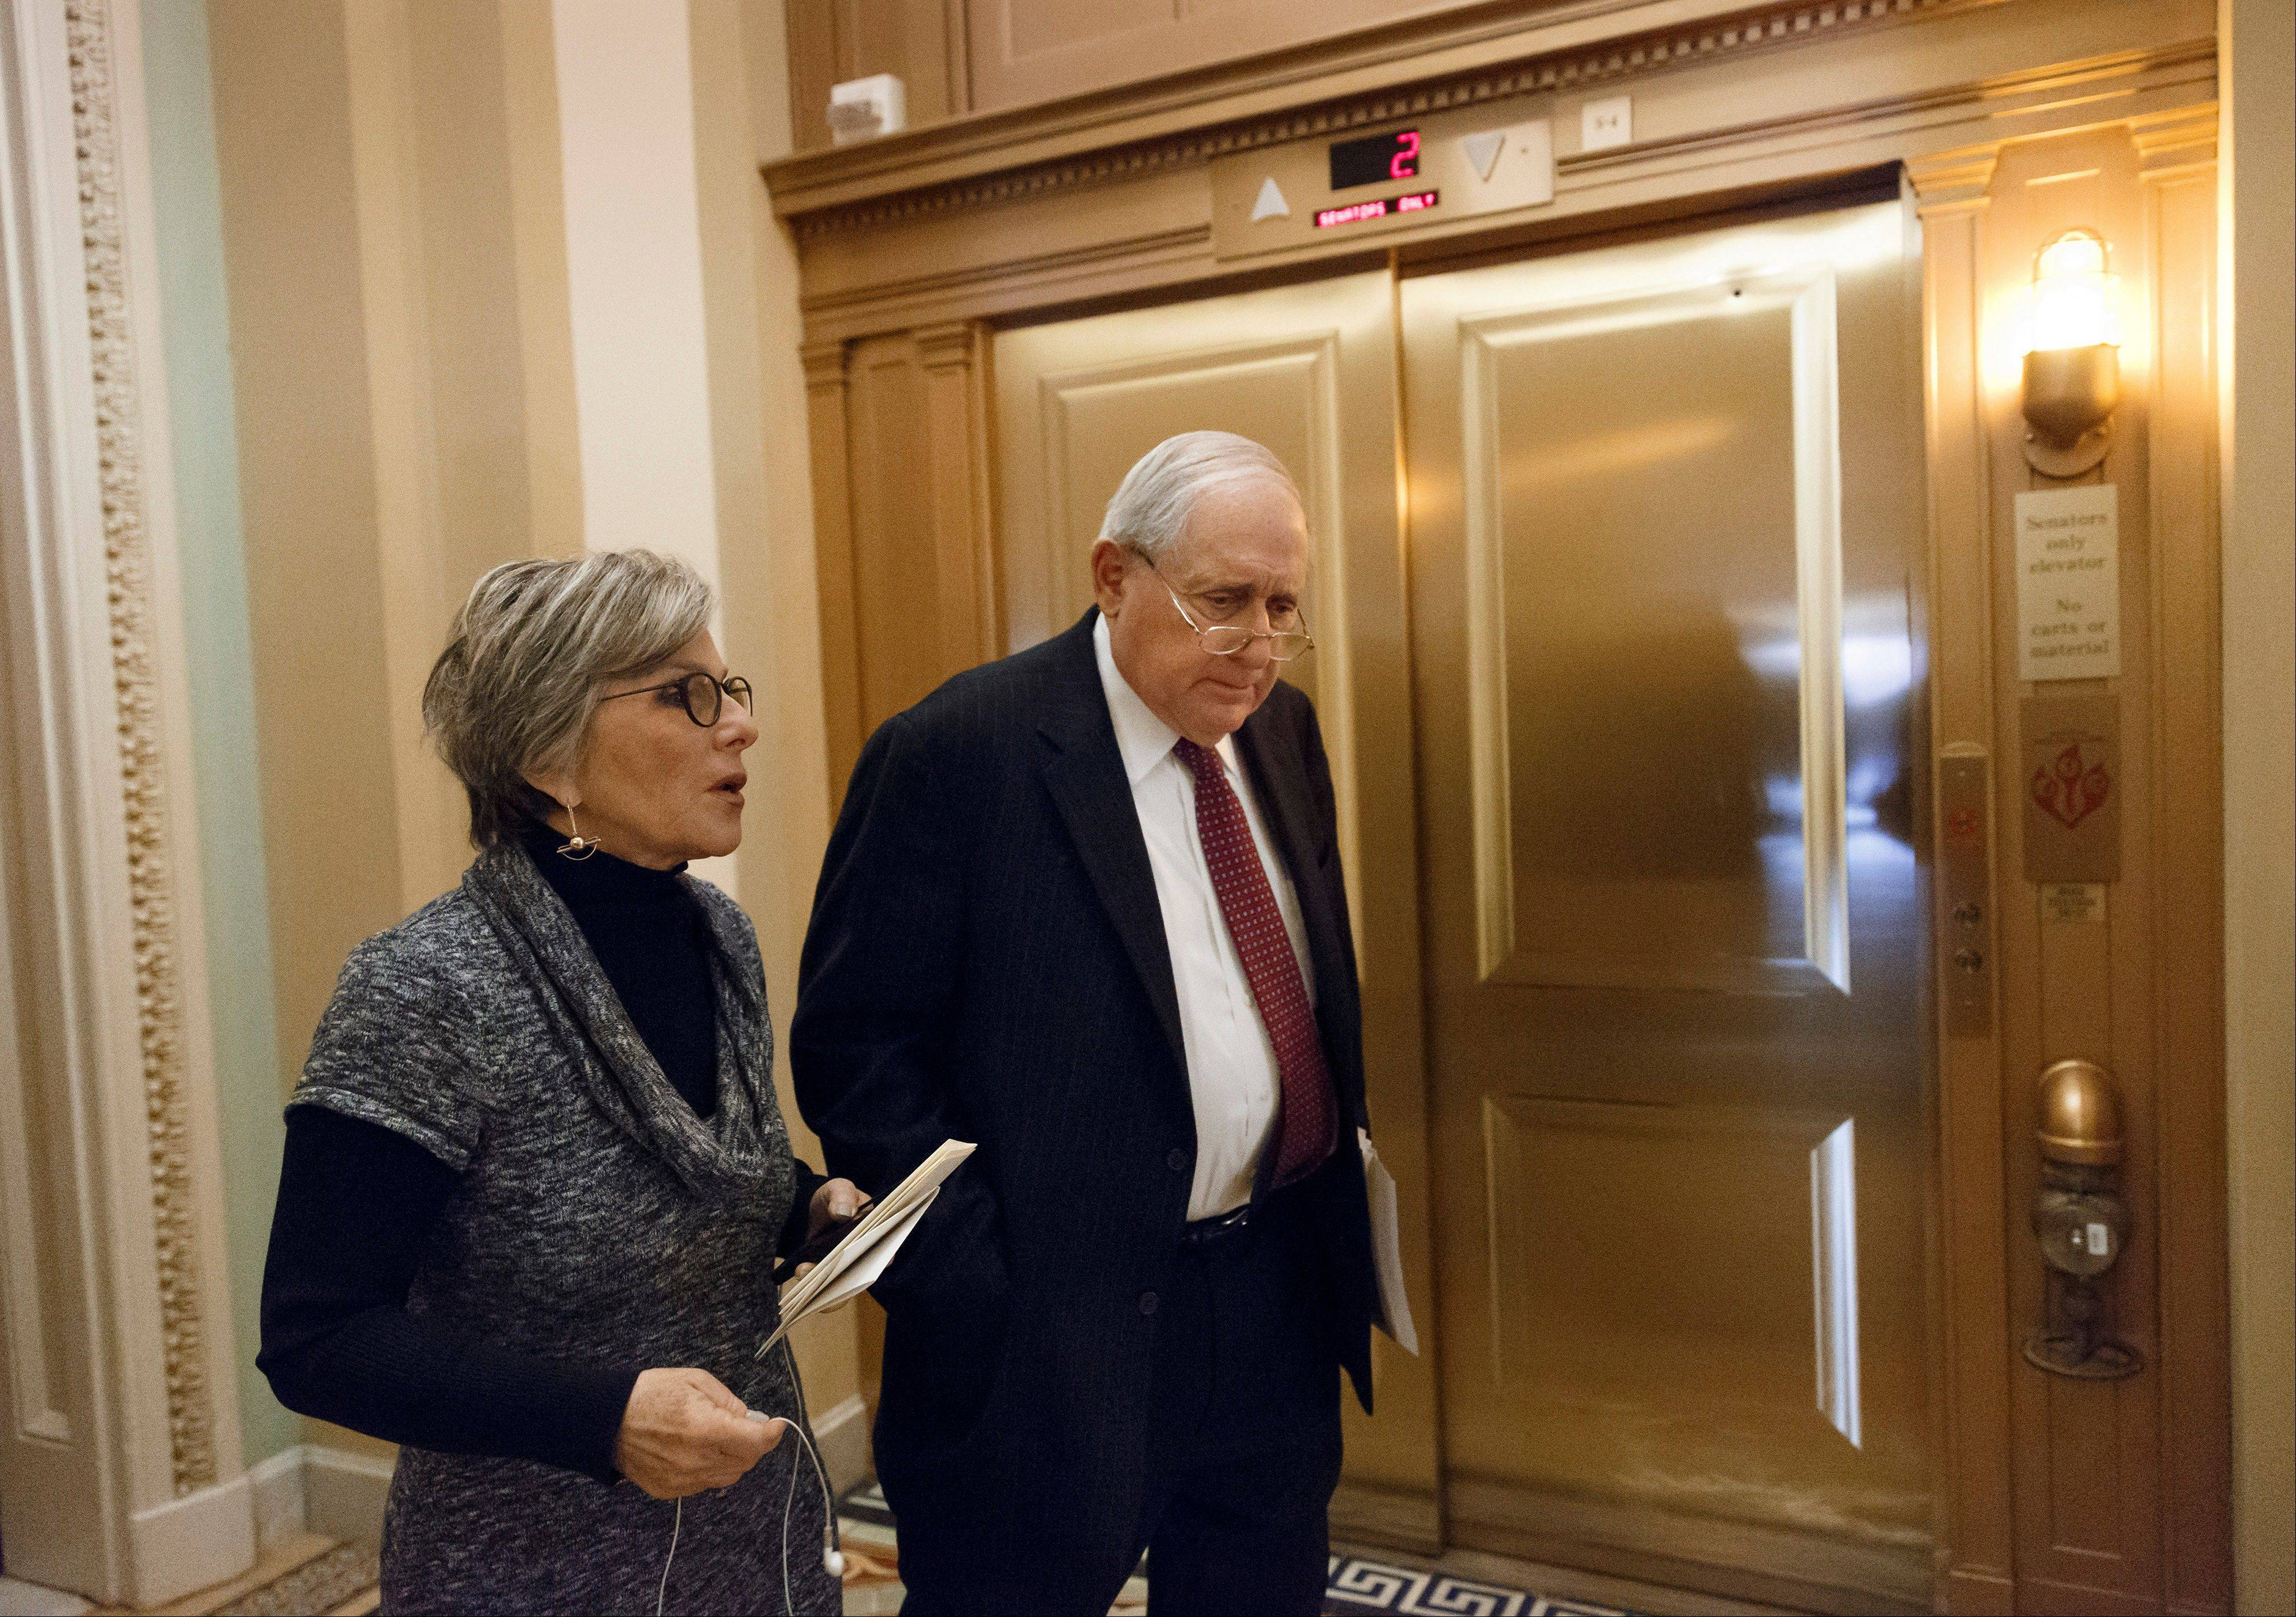 Senate Armed Services Committee Chairman Carl Levin, D-Mich., right, confers with Sen. Barbara Boxer, D-Calif., as a vote nears on a sweeping, $633 billion defense bill, at the Capitol in Washington, Thursday, Dec. 19, 2013.